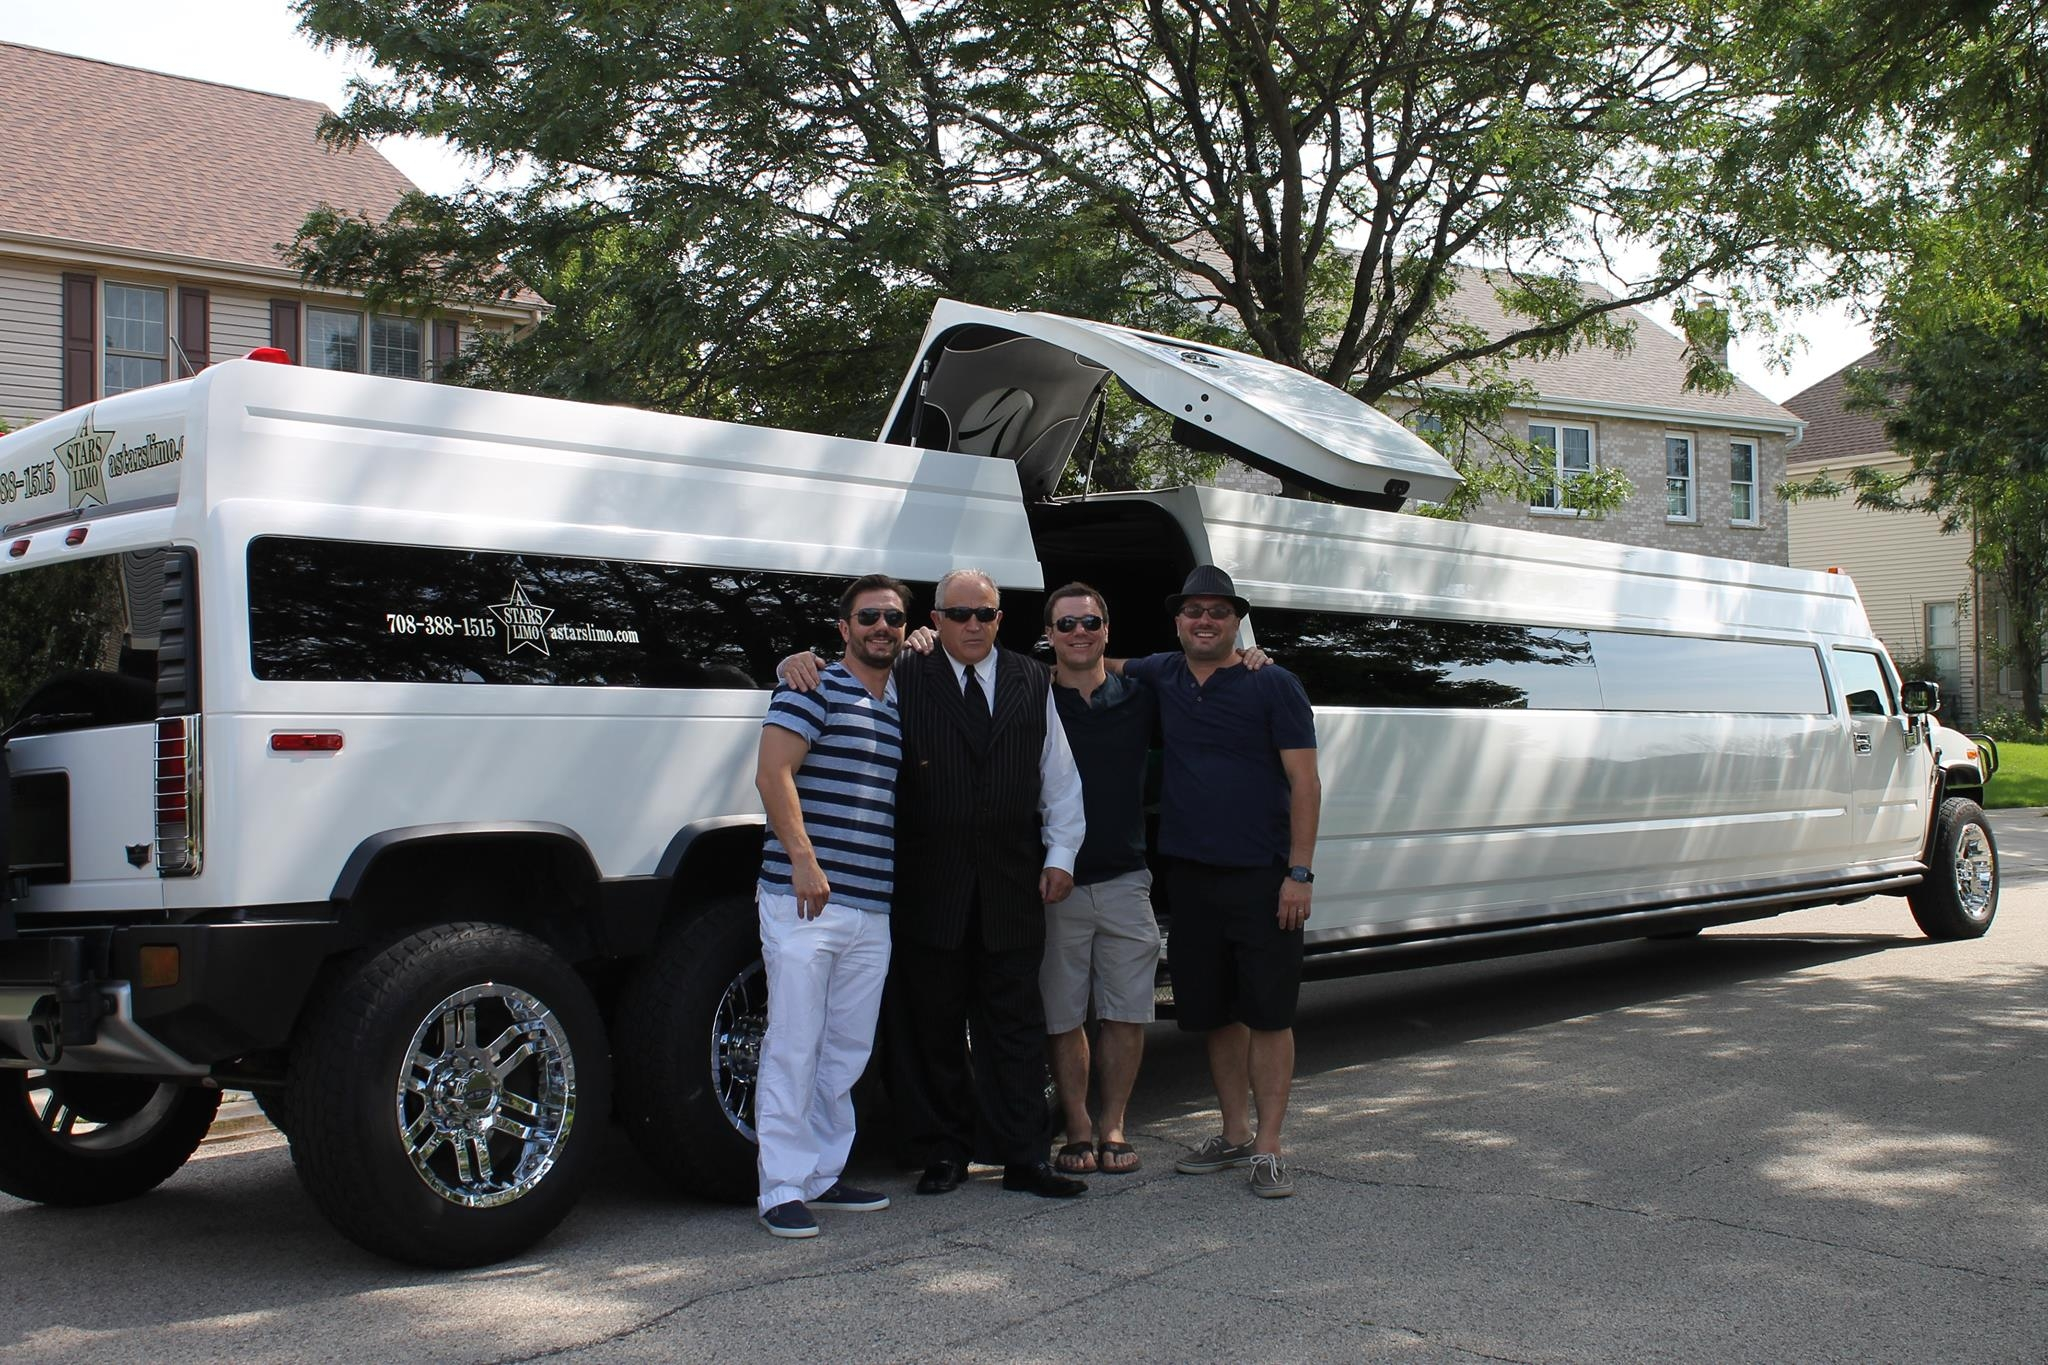 A Stars Limo | Hummer Rides in Palos Heights | Hummer Rides Palos Heights 7.jpg